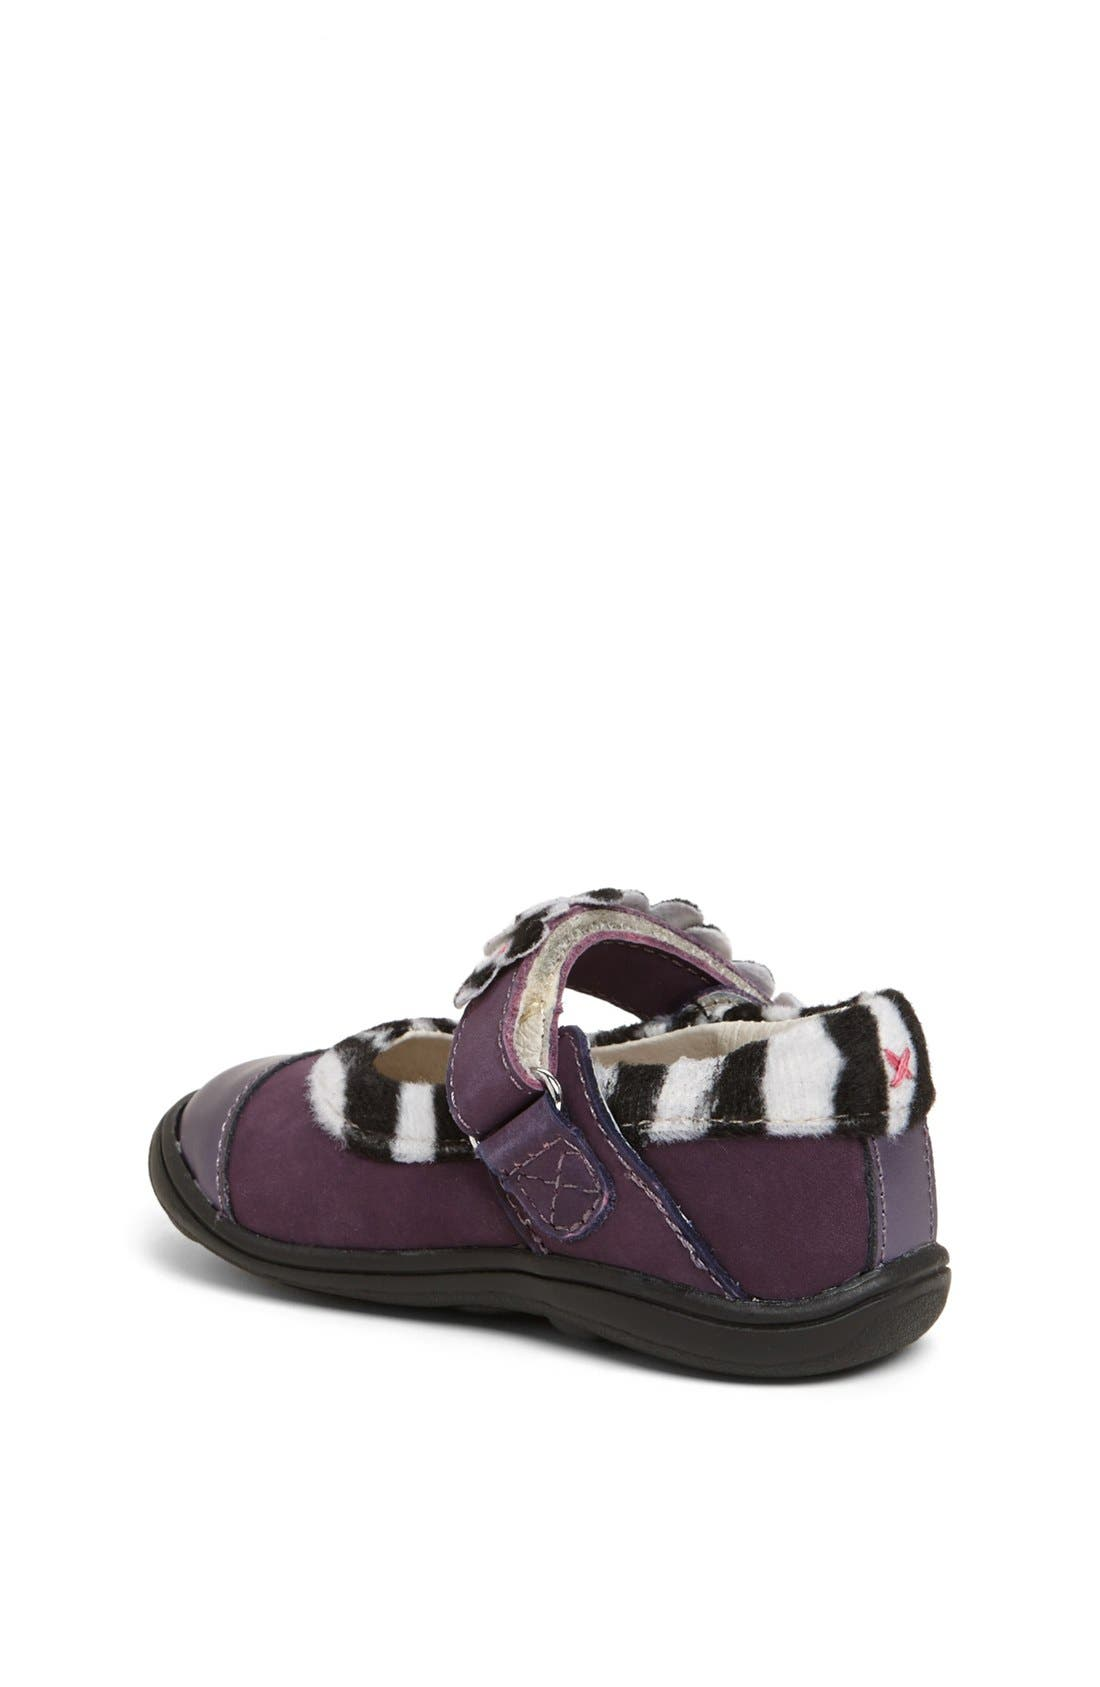 Alternate Image 2  - Umi 'Marnie' Mary Jane Flat (Walker & Toddler)